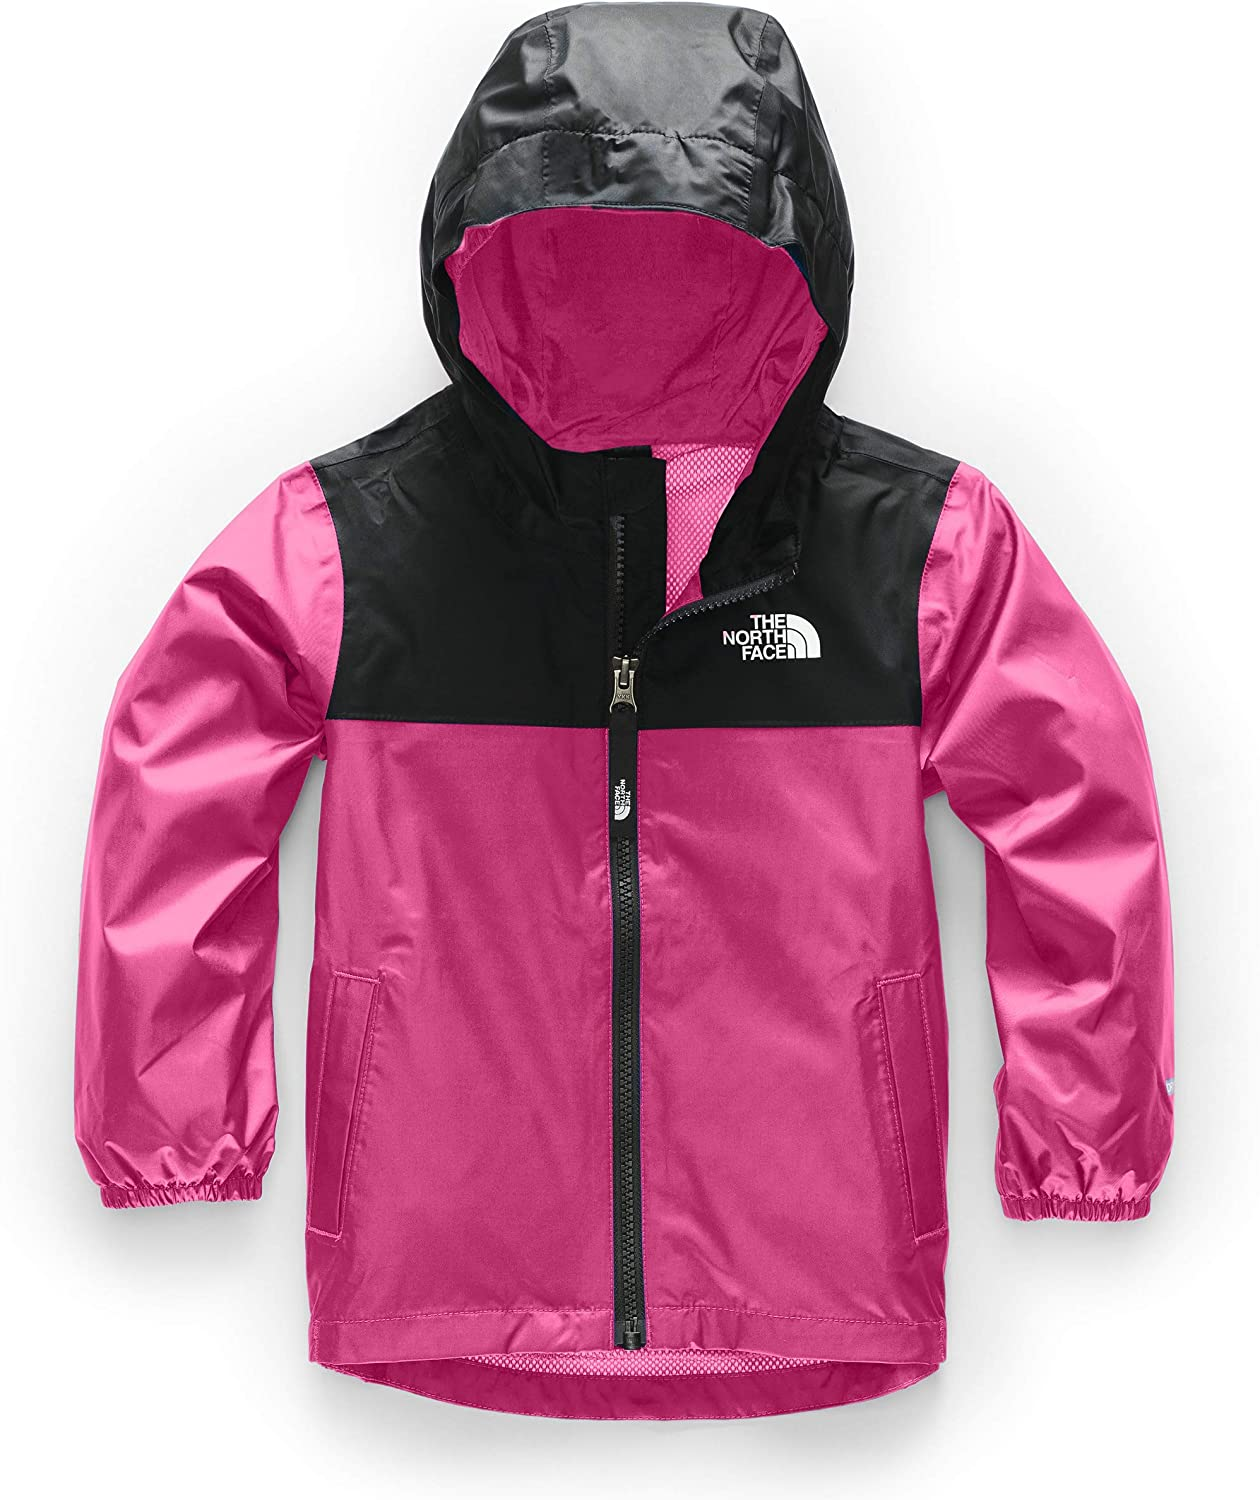 The North Face OUTERWEAR ユニセックス・ベビー